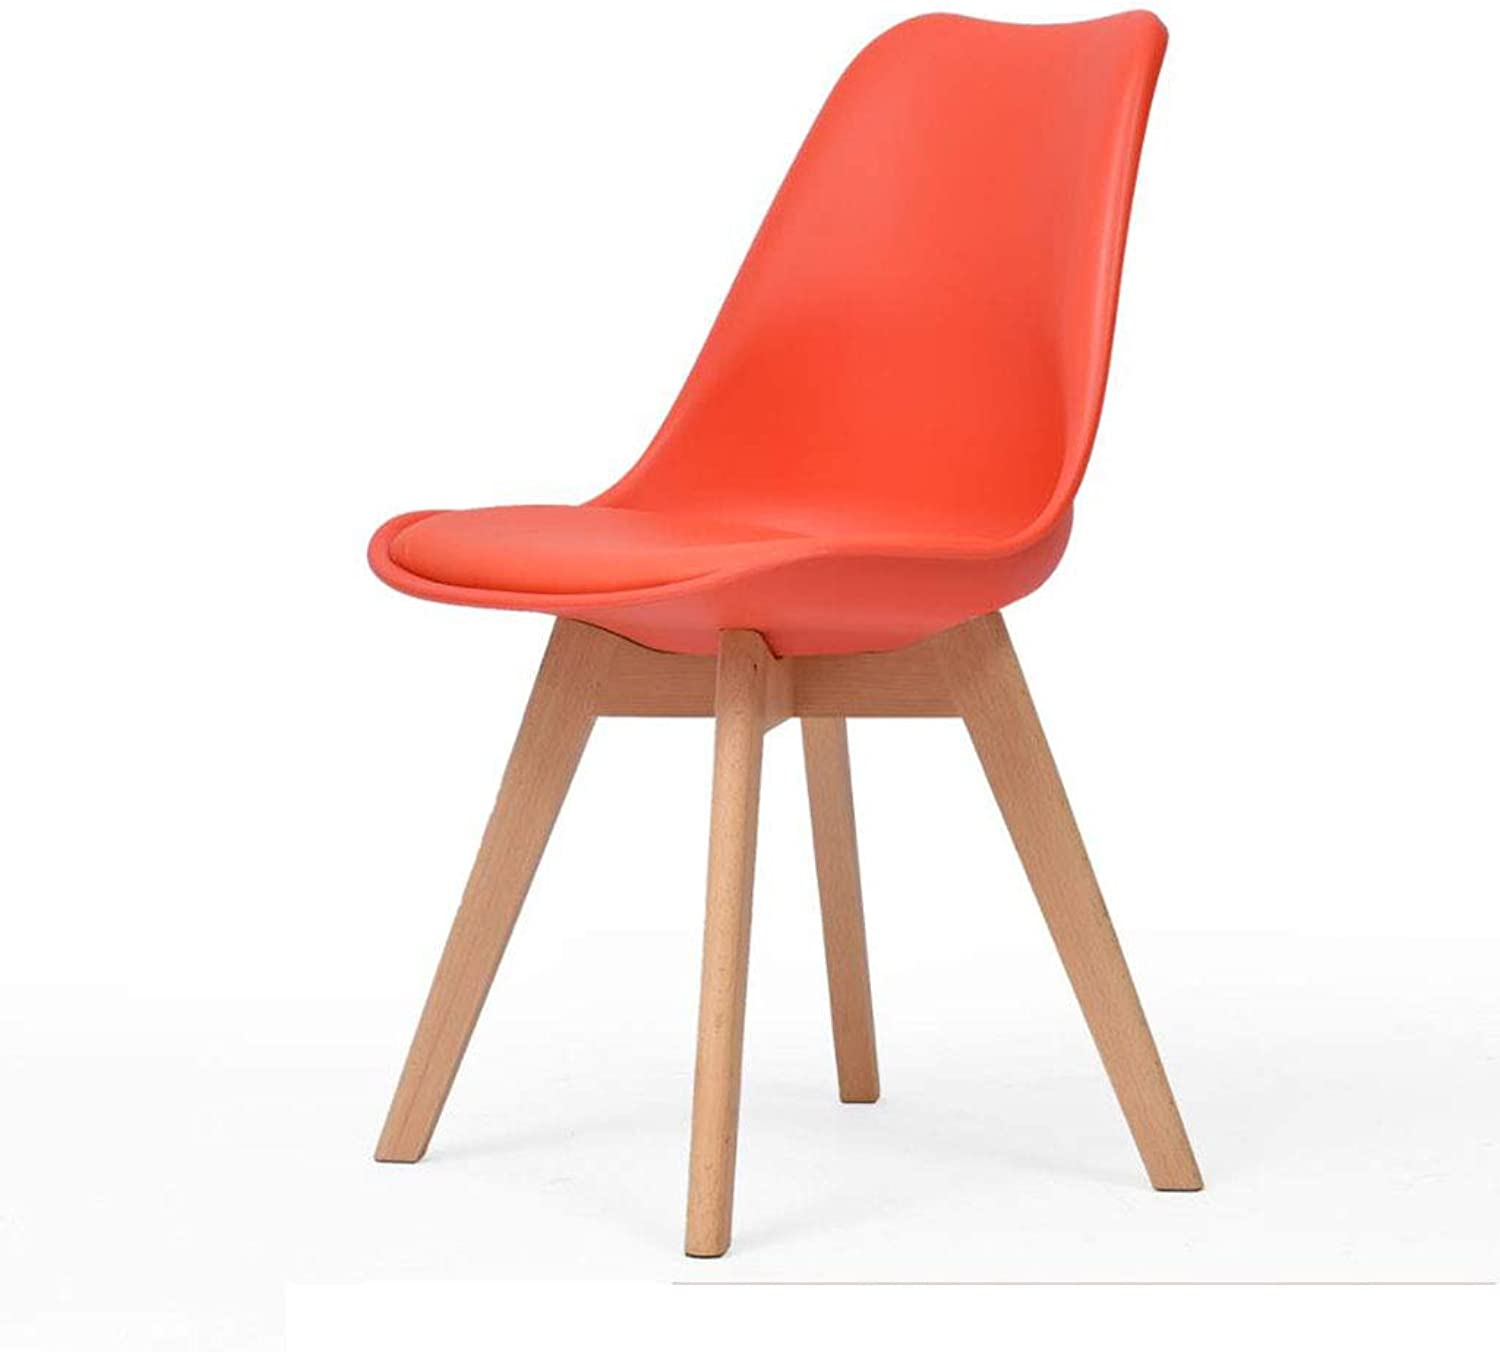 Solid Wood Chair Plastic Desk Chair Simple Modern backrest Dining Chair Nordic Office Creative Chair [Multiple colors, 83cm],red